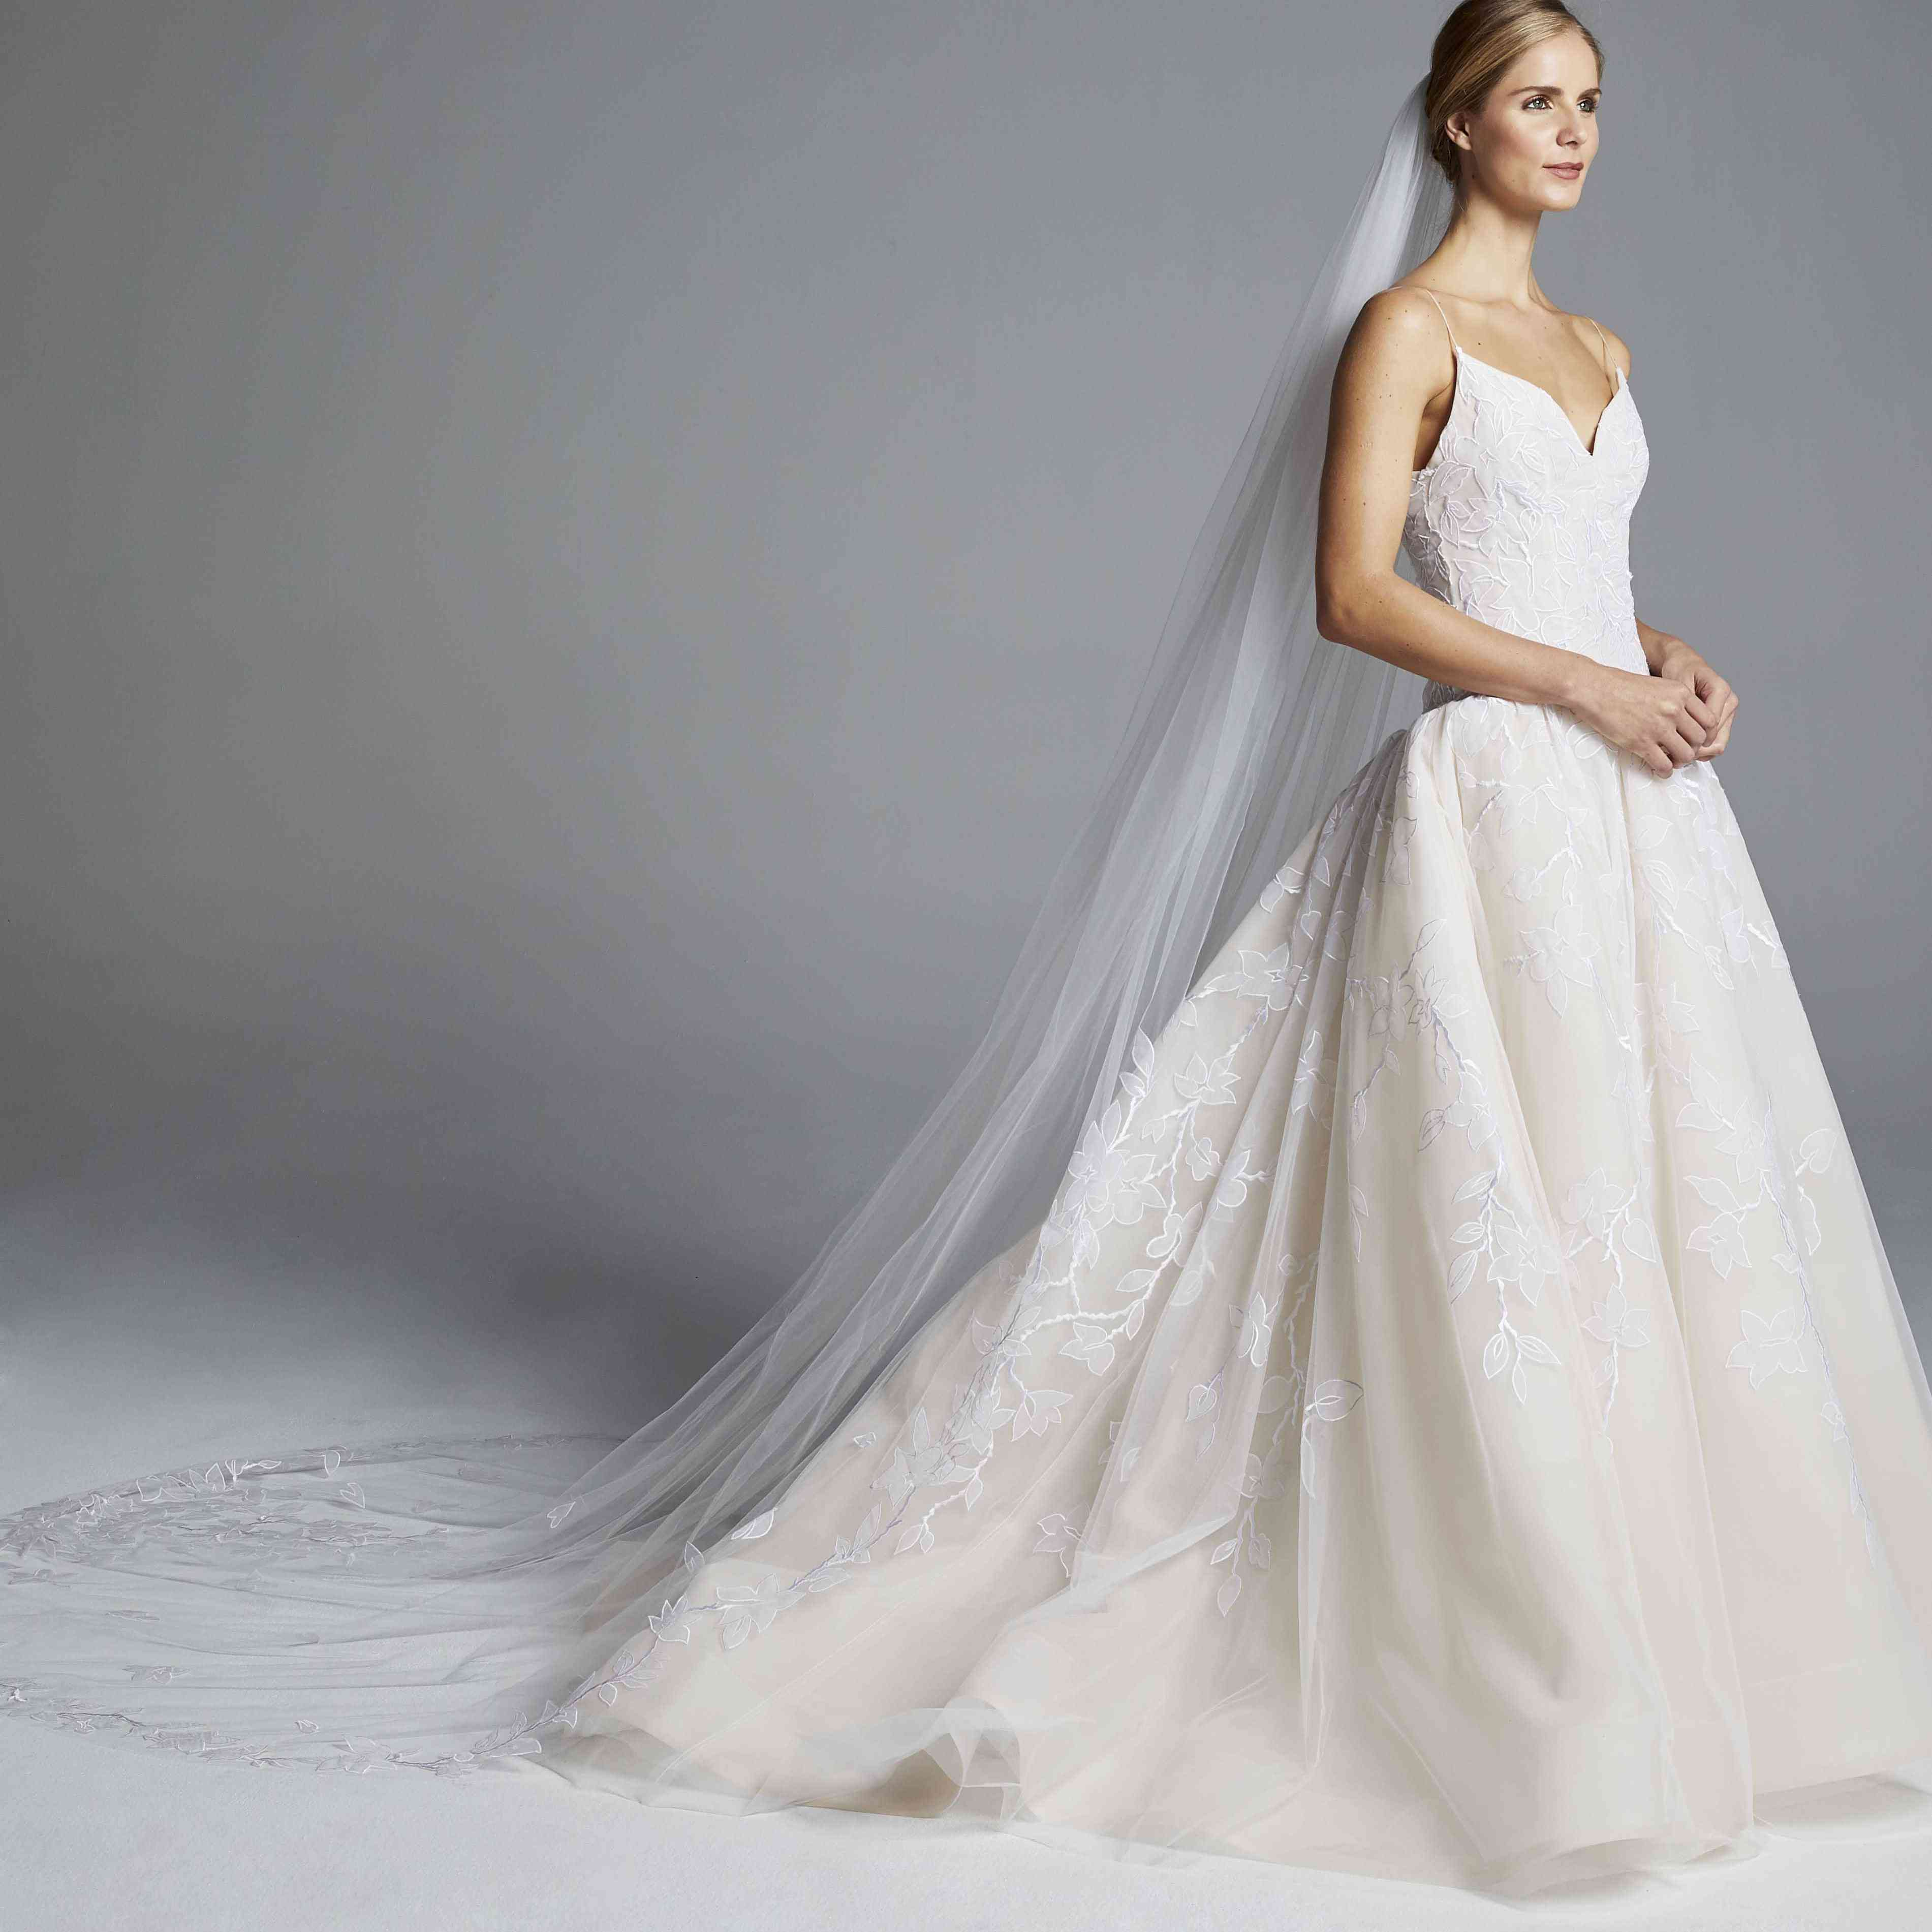 The Top Wedding Dress Trends Of 2019,Reception Indian Wedding Dress For Brides Father